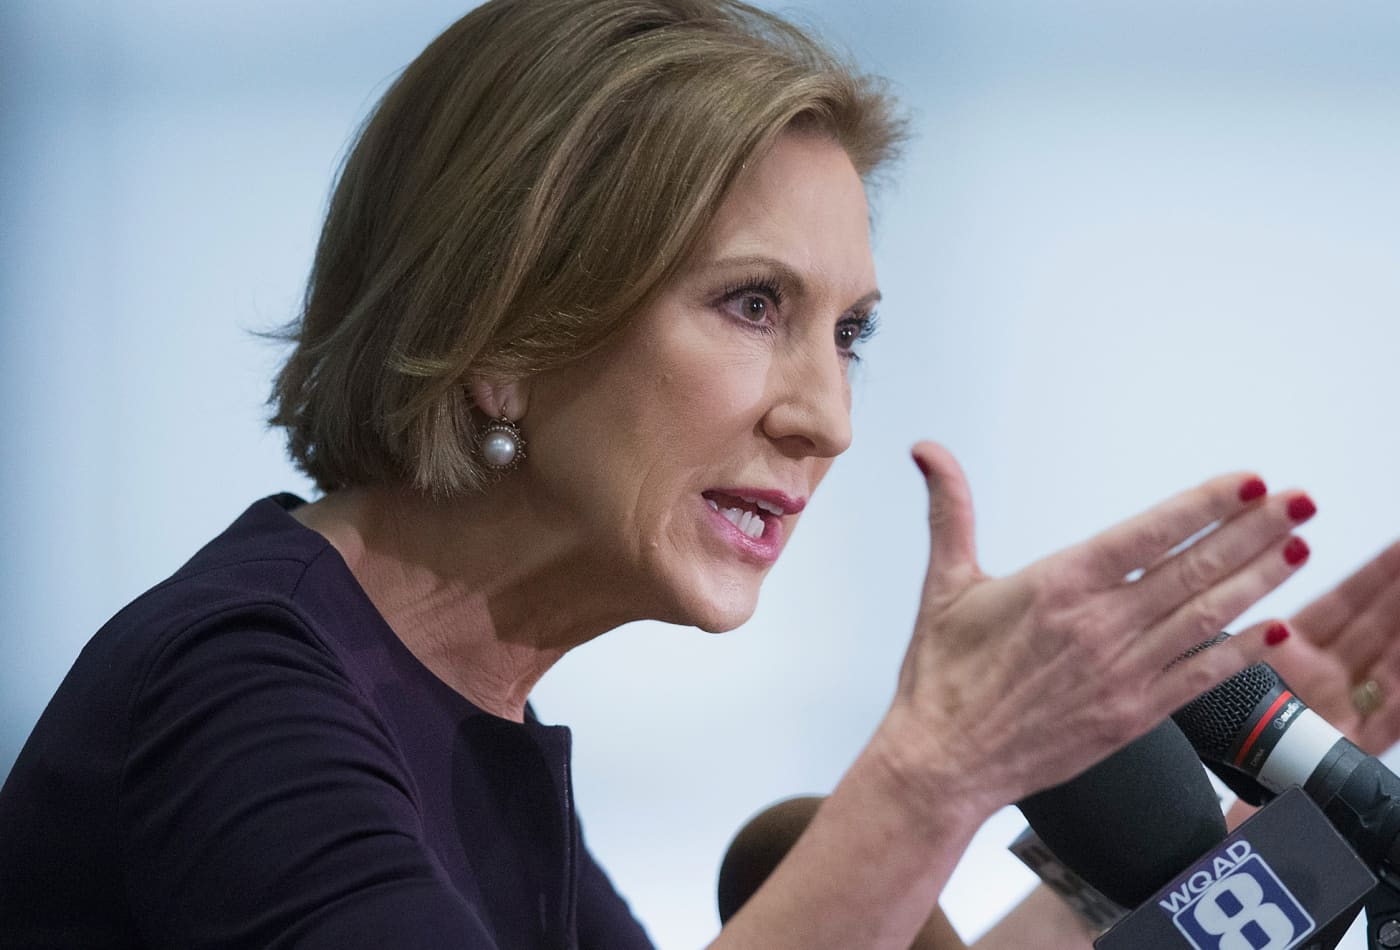 Former HP CEO Carly Fiorina on how businesses can prepare for coronavirus